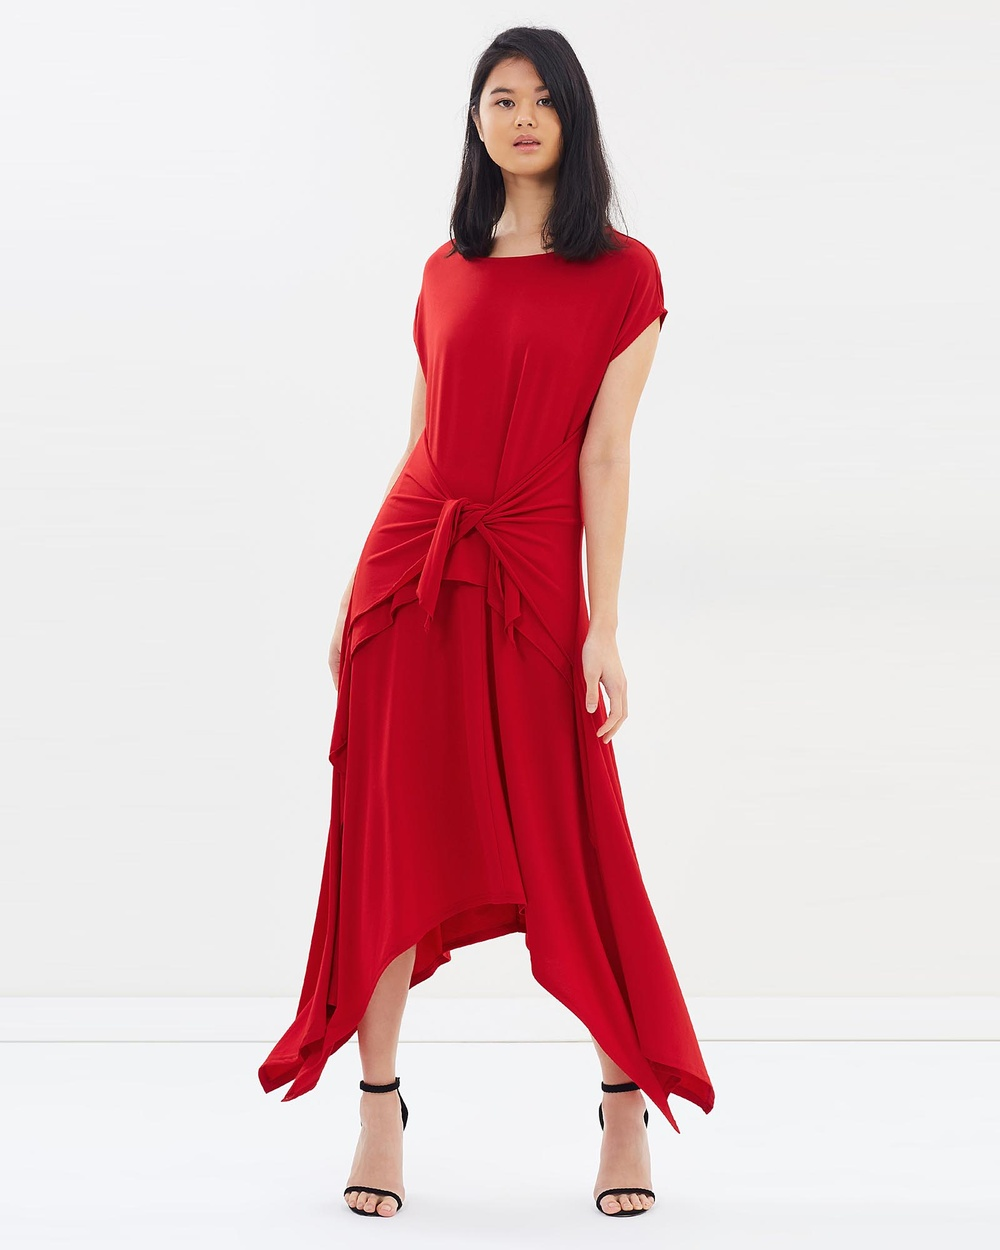 Otto Mode Common Thread Dress Dresses Cherry Common Thread Dress